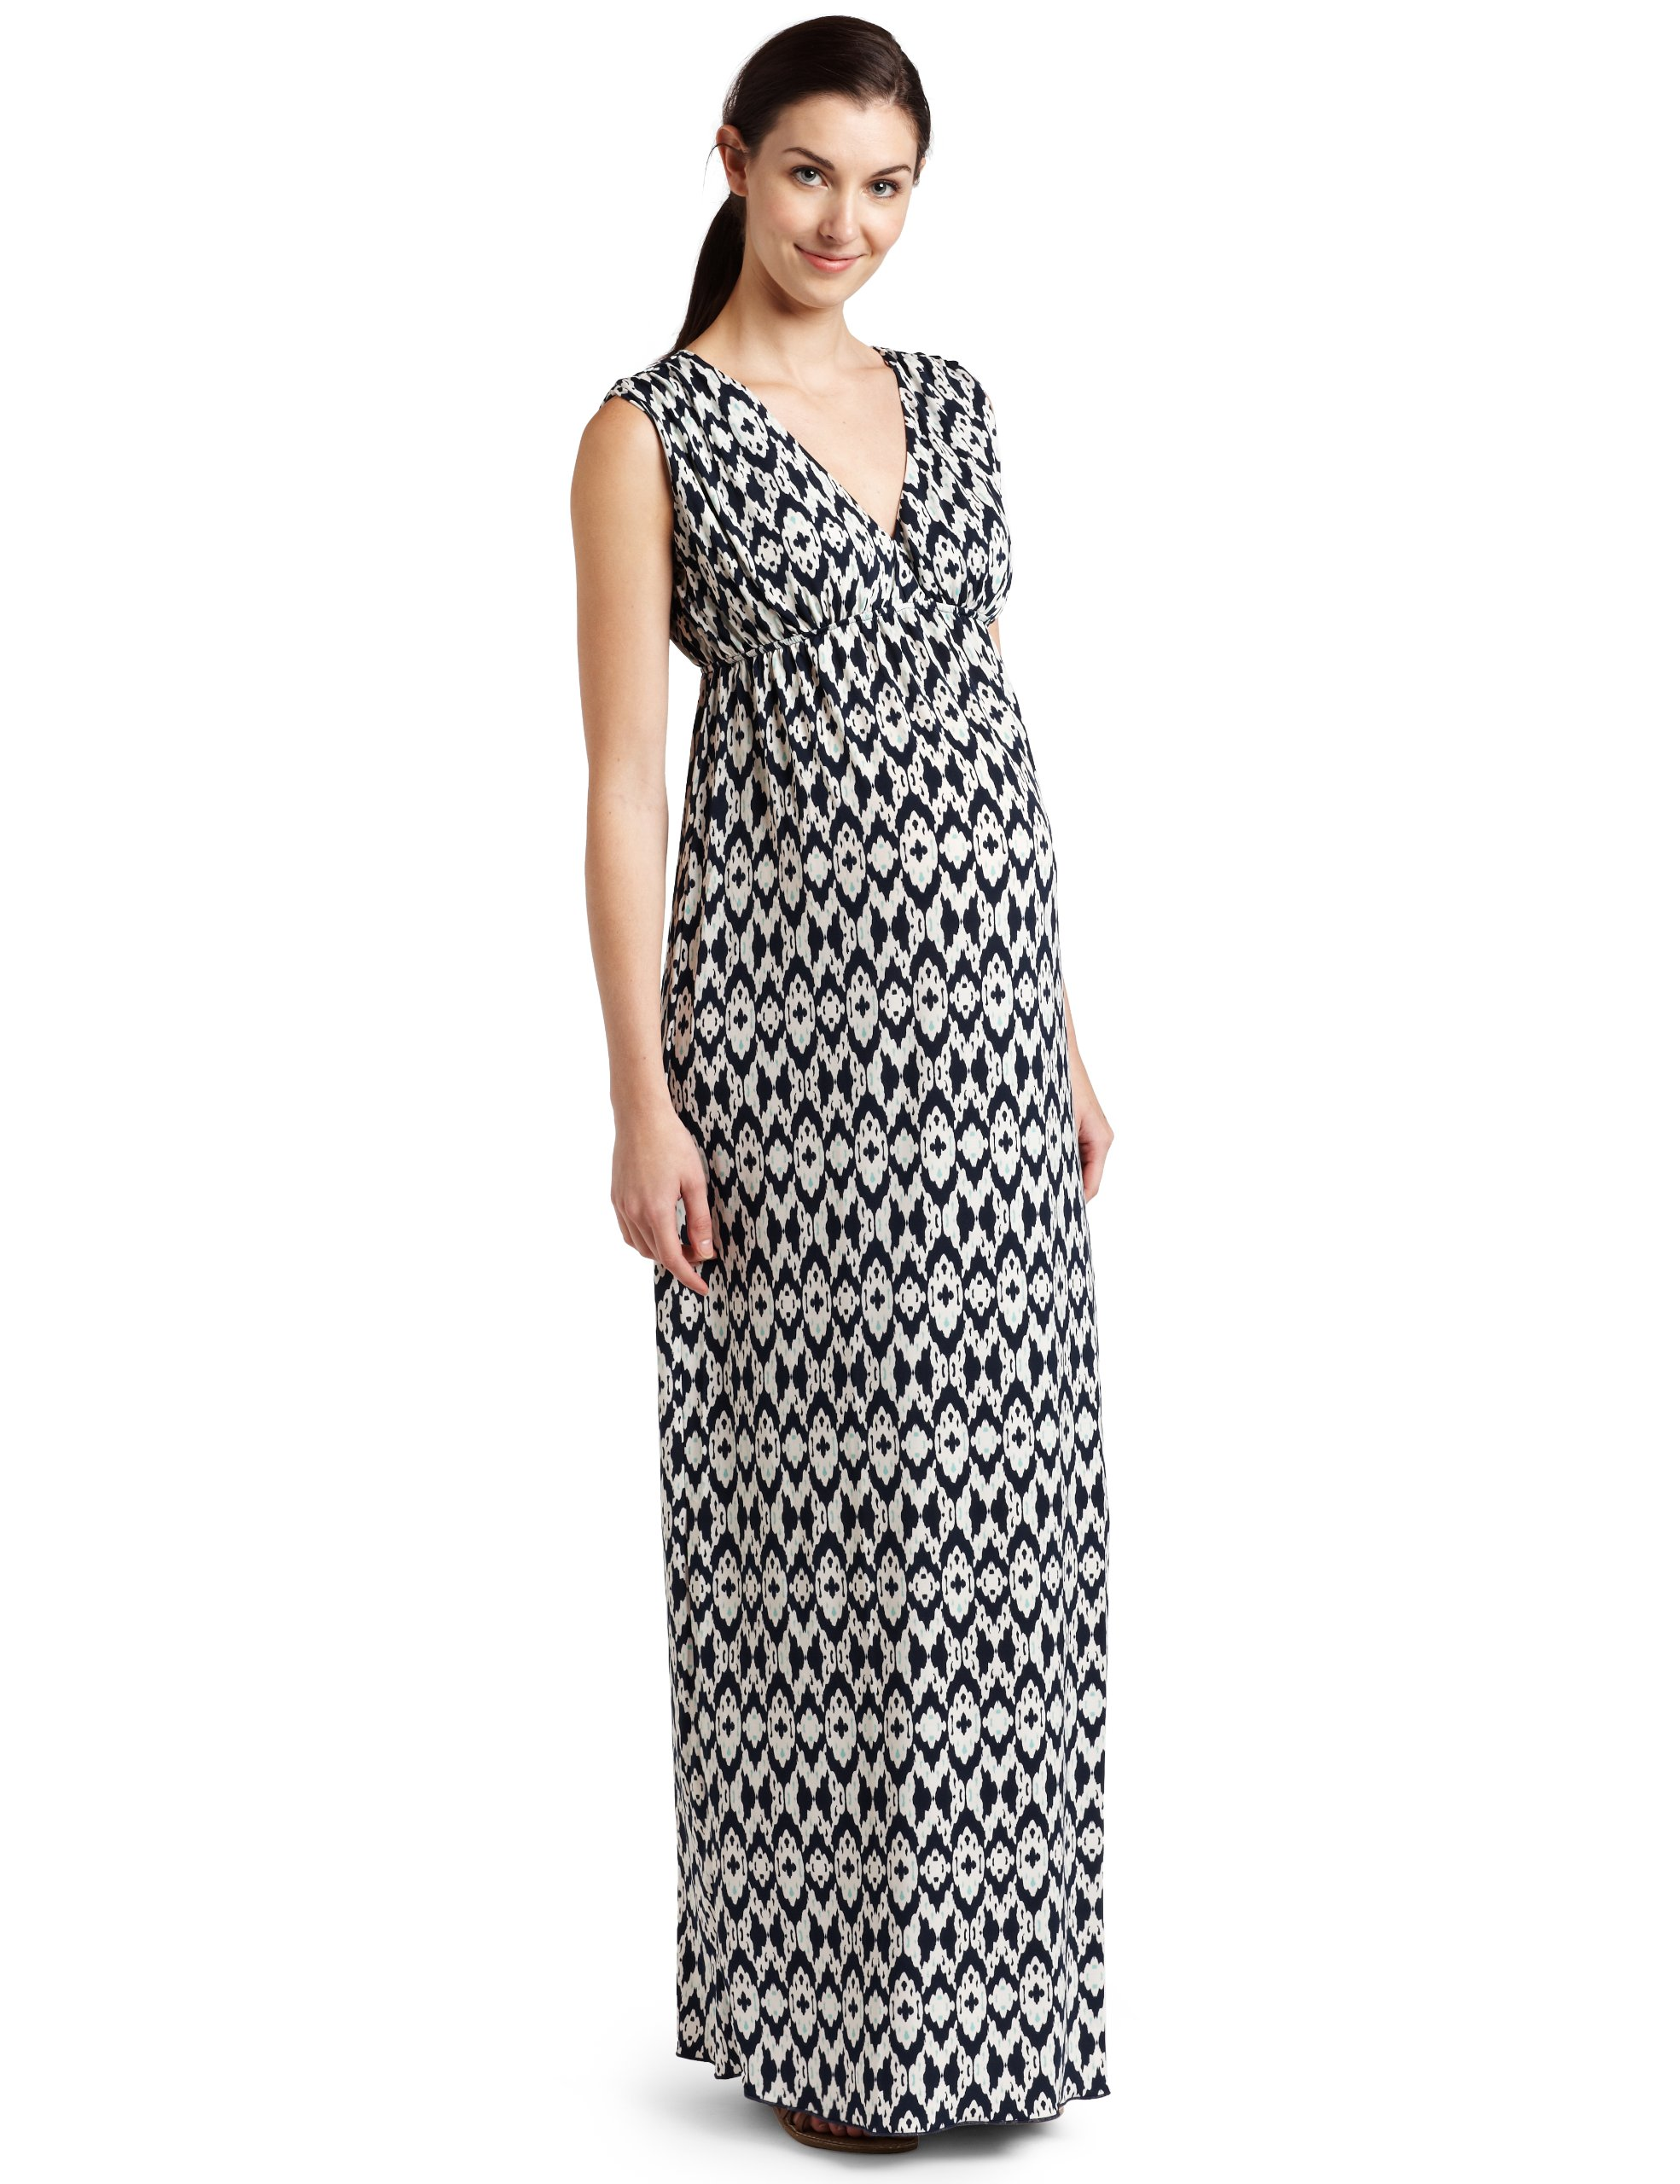 Everly Grey Women's Maternity Jill Maxi Dress In Batik Print, Seafoam/Navy, Large